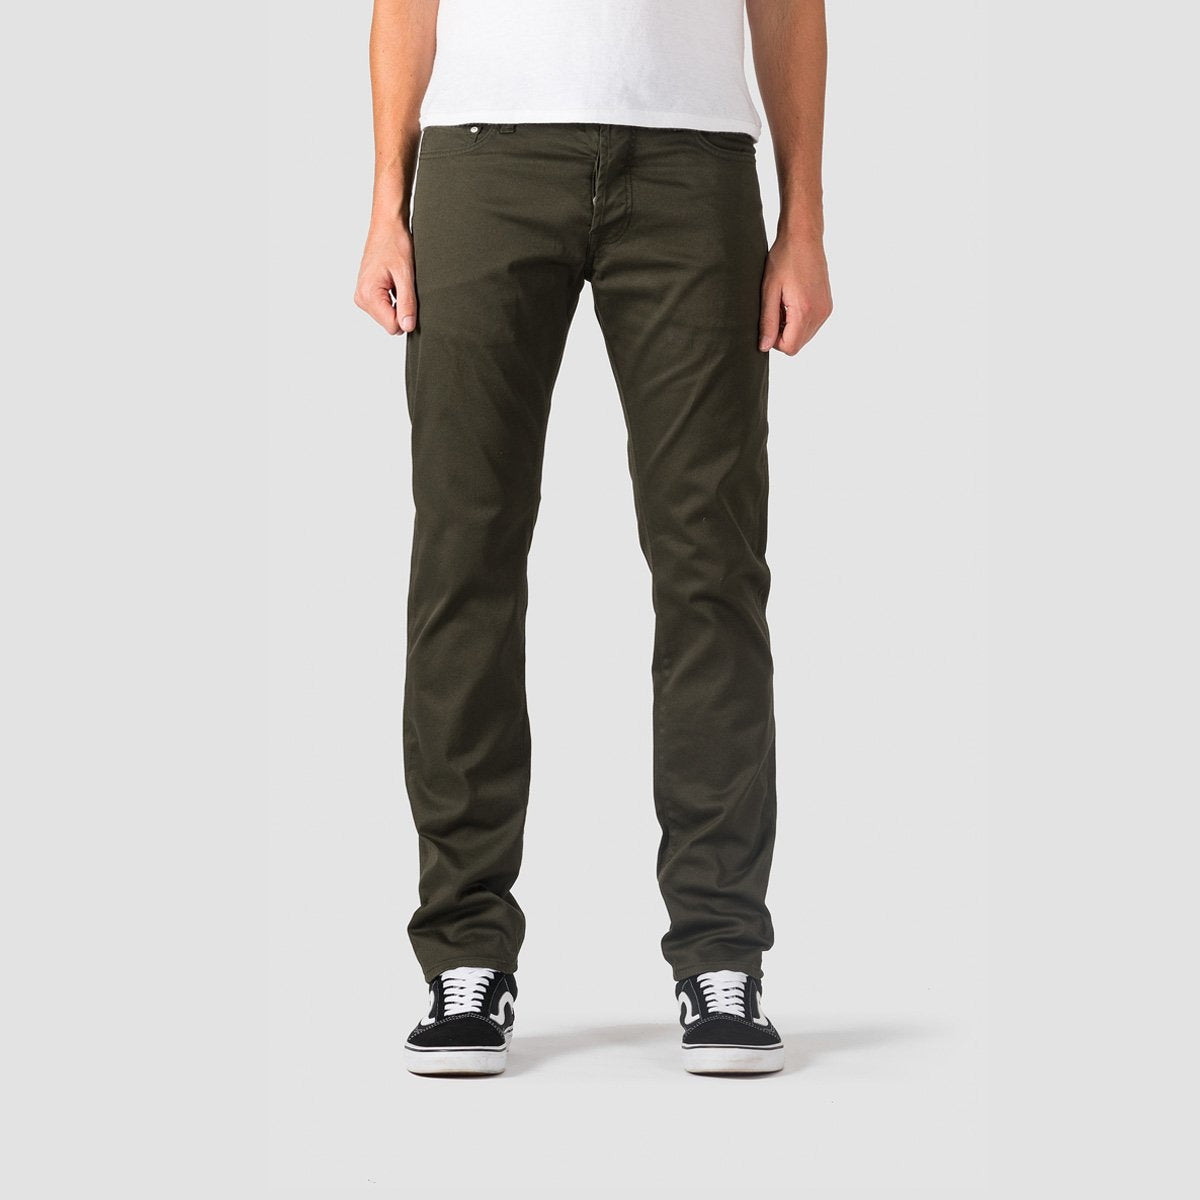 Carhartt WIP Klondike Pants Cypress Rinsed - Clothing